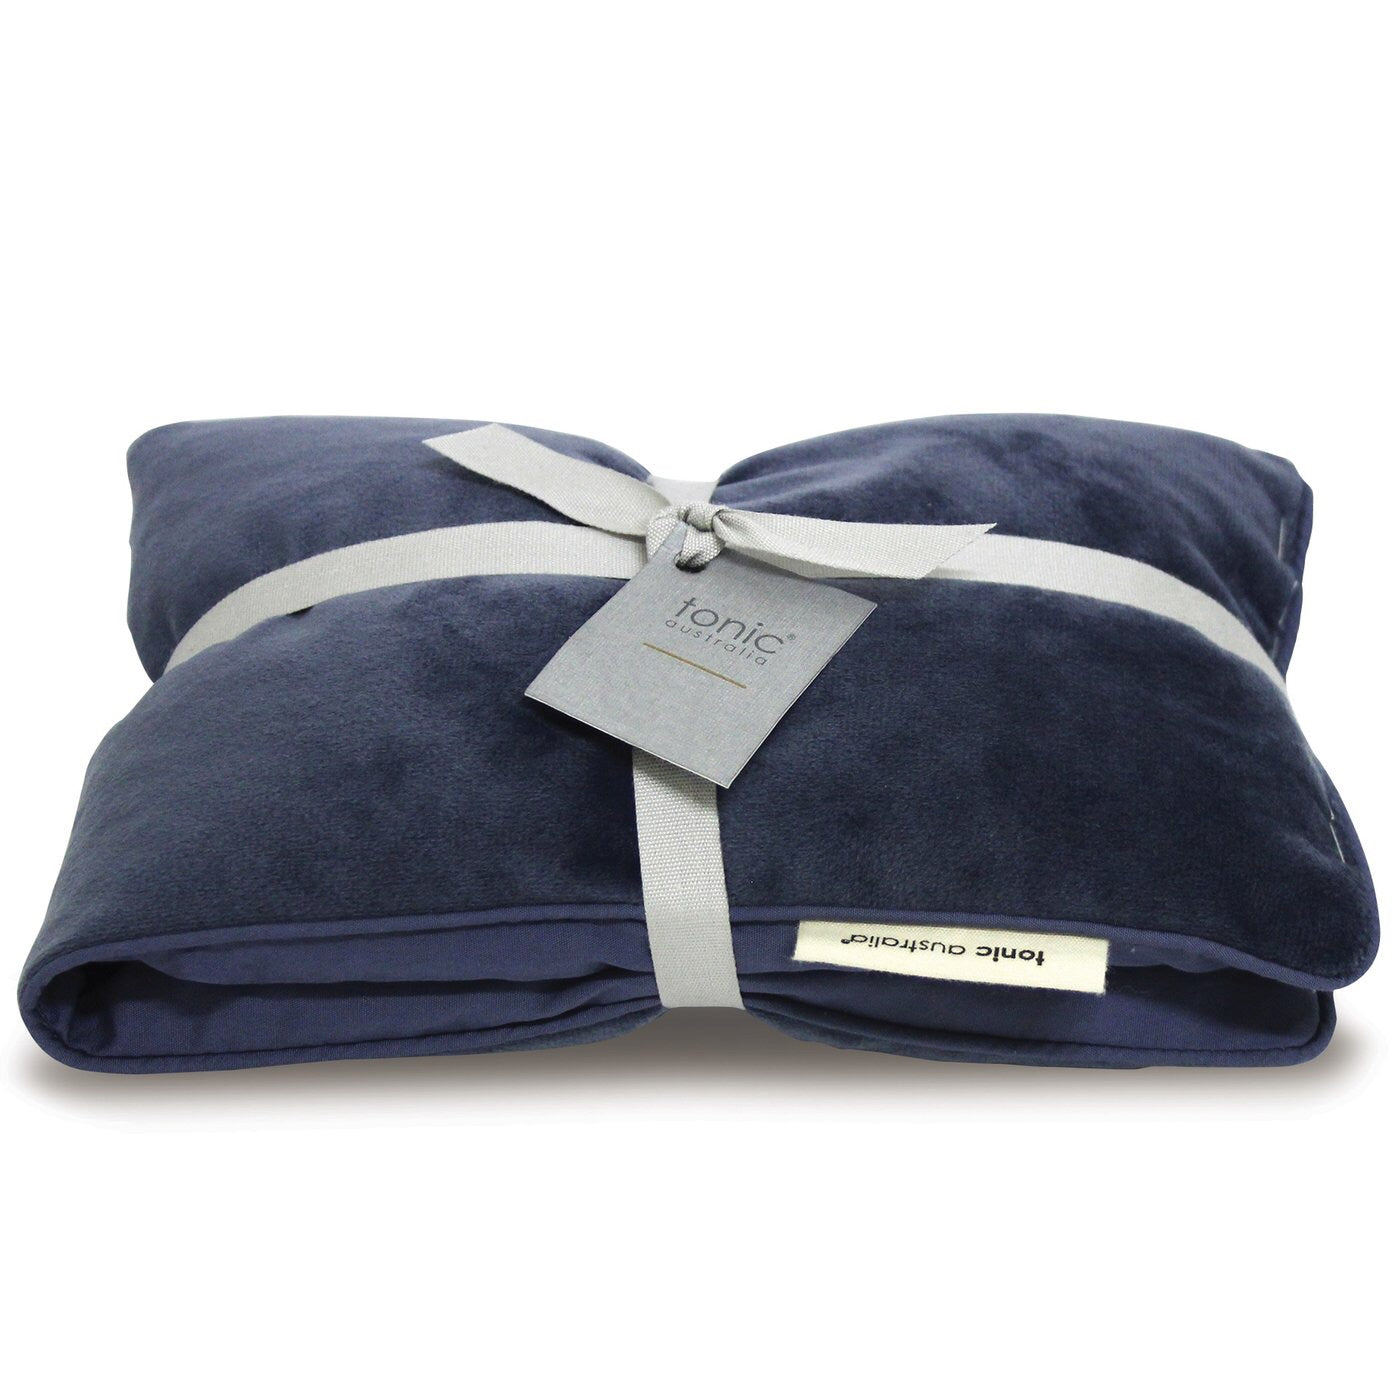 Tonic / Luxe Velvet Heat Pillow - Storm